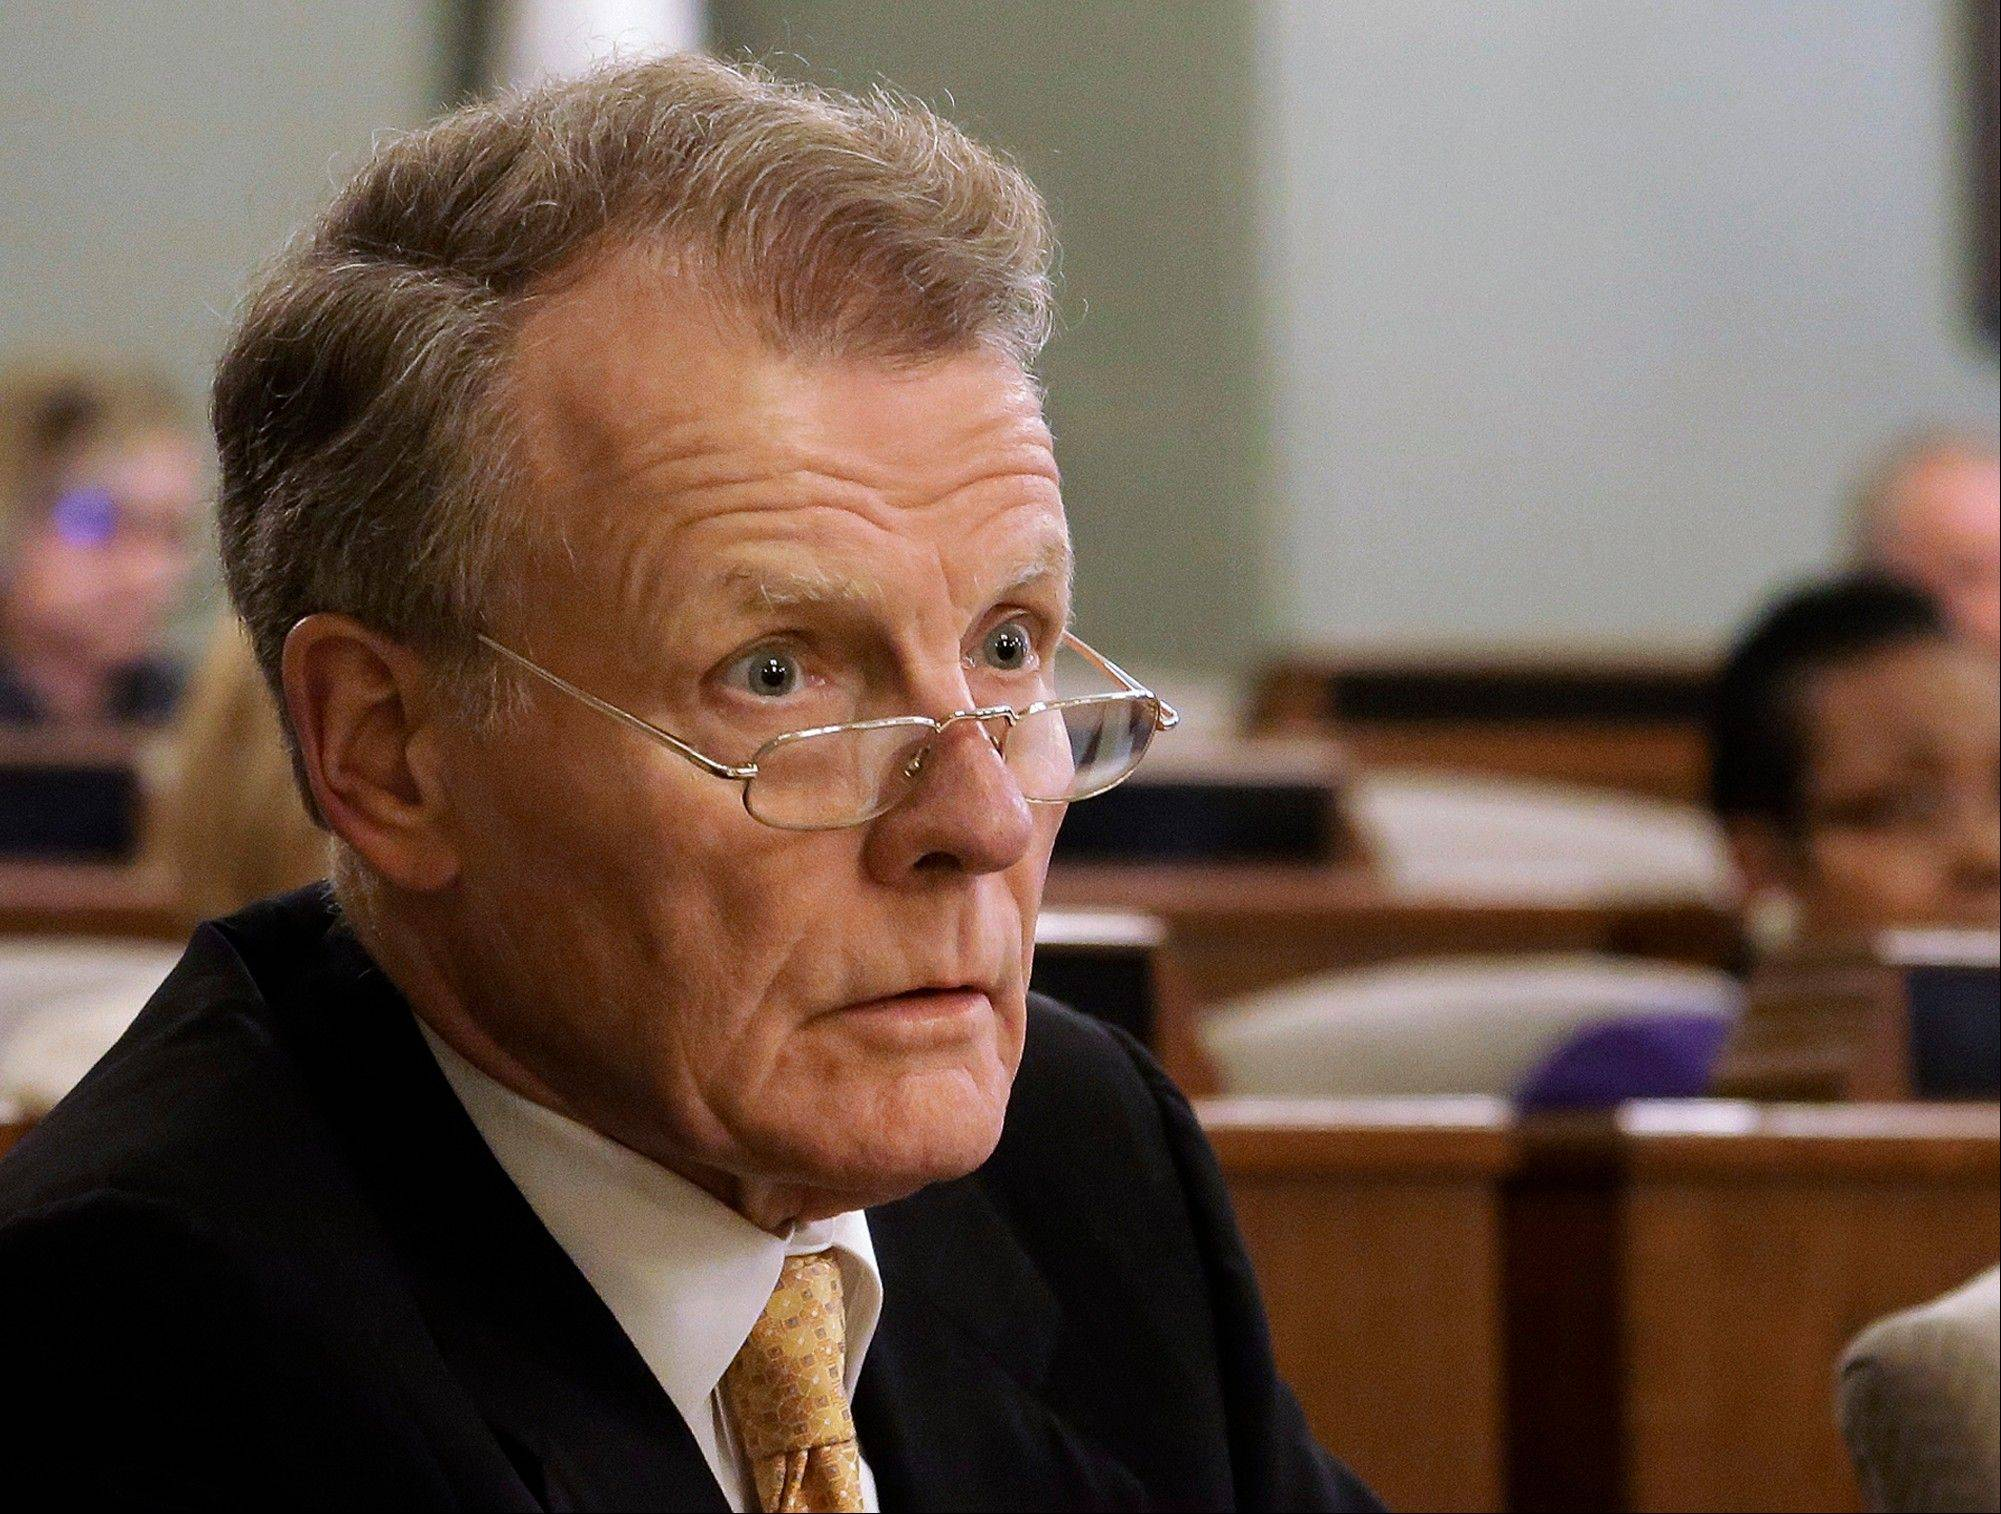 In this June 18, 2013 file photo, Illinois House Speaker Michael Madigan, a Chicago Democrat, speaks to lawmakers during a House committee hearing at the state Capitol in Springfield. Lawmakers say they are making progress on a deal to solve Illinois� $97 billion pension crisis, but are not confident there will be a vote as the annual fall legislative session enters its final days beginning Tuesday.